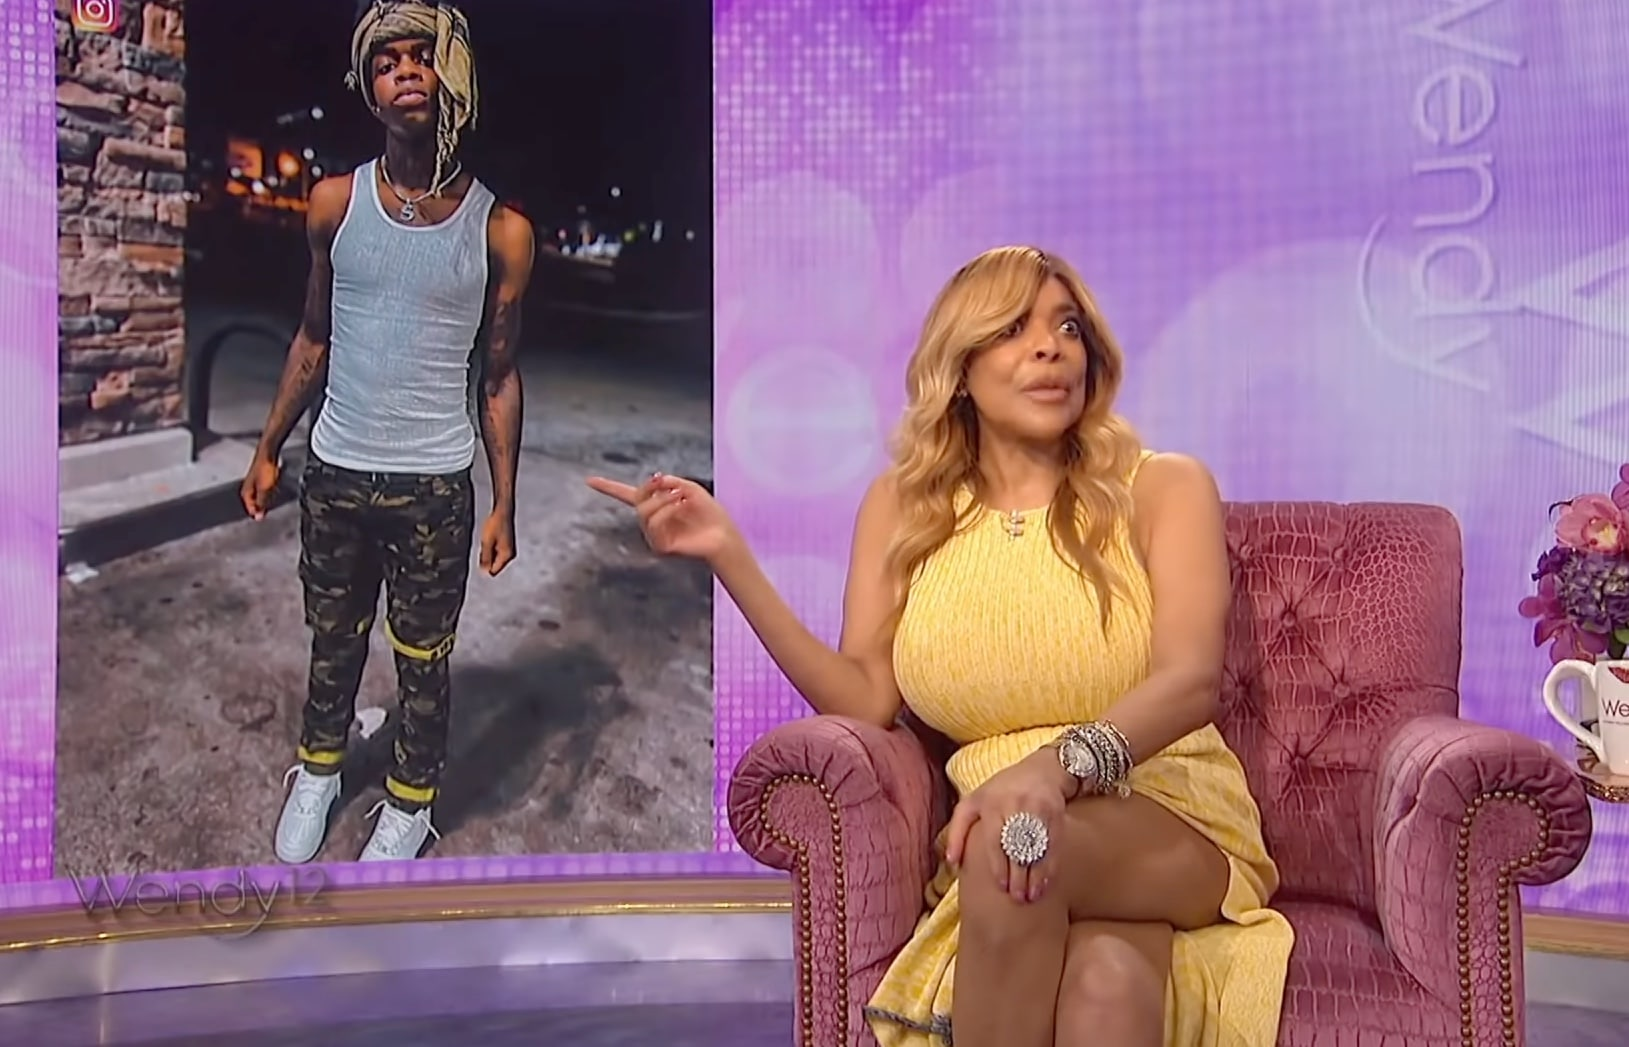 Wendy Williams faces blistering backlash over coverage of TikTok star's murder